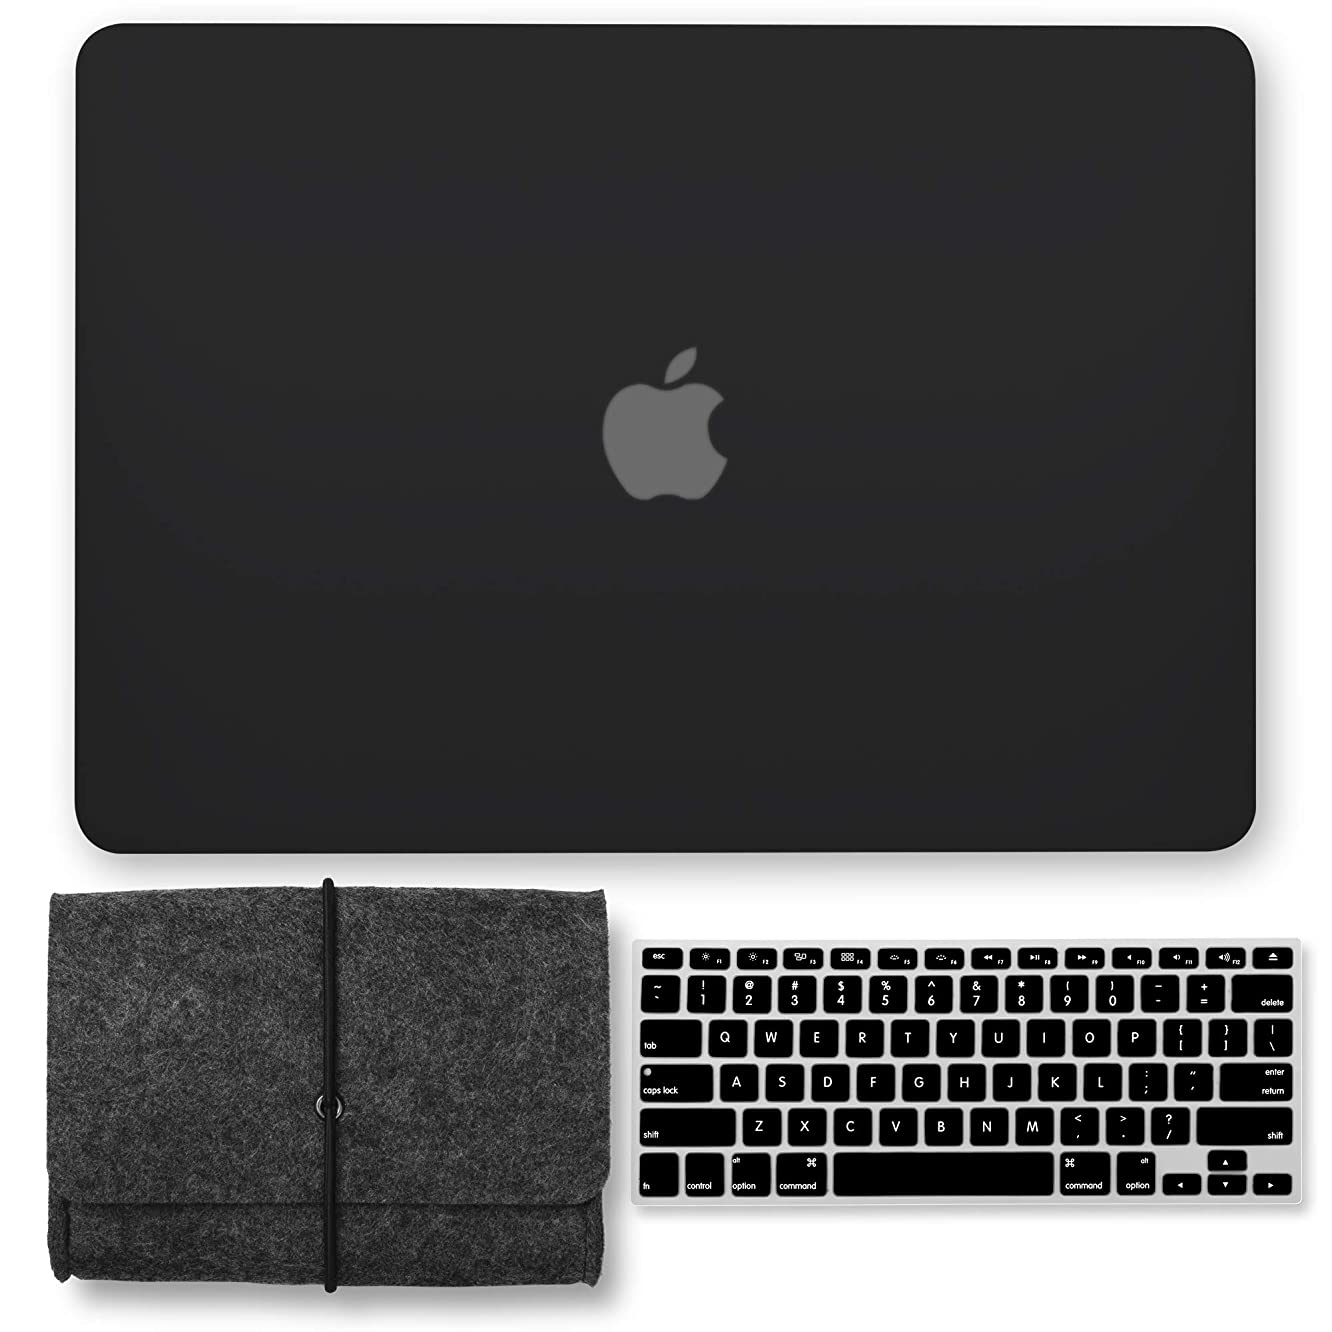 GMYLE MacBook Pro 15 Case 2018 2017 2016 Release A1990/A1707 with Touch Bar, Plastic Hard Shell & Keyboard Cover & Felt Pouch Storage Bag Compatible Newest Mac Pro 15 Inch, Black icbfgyqut918213